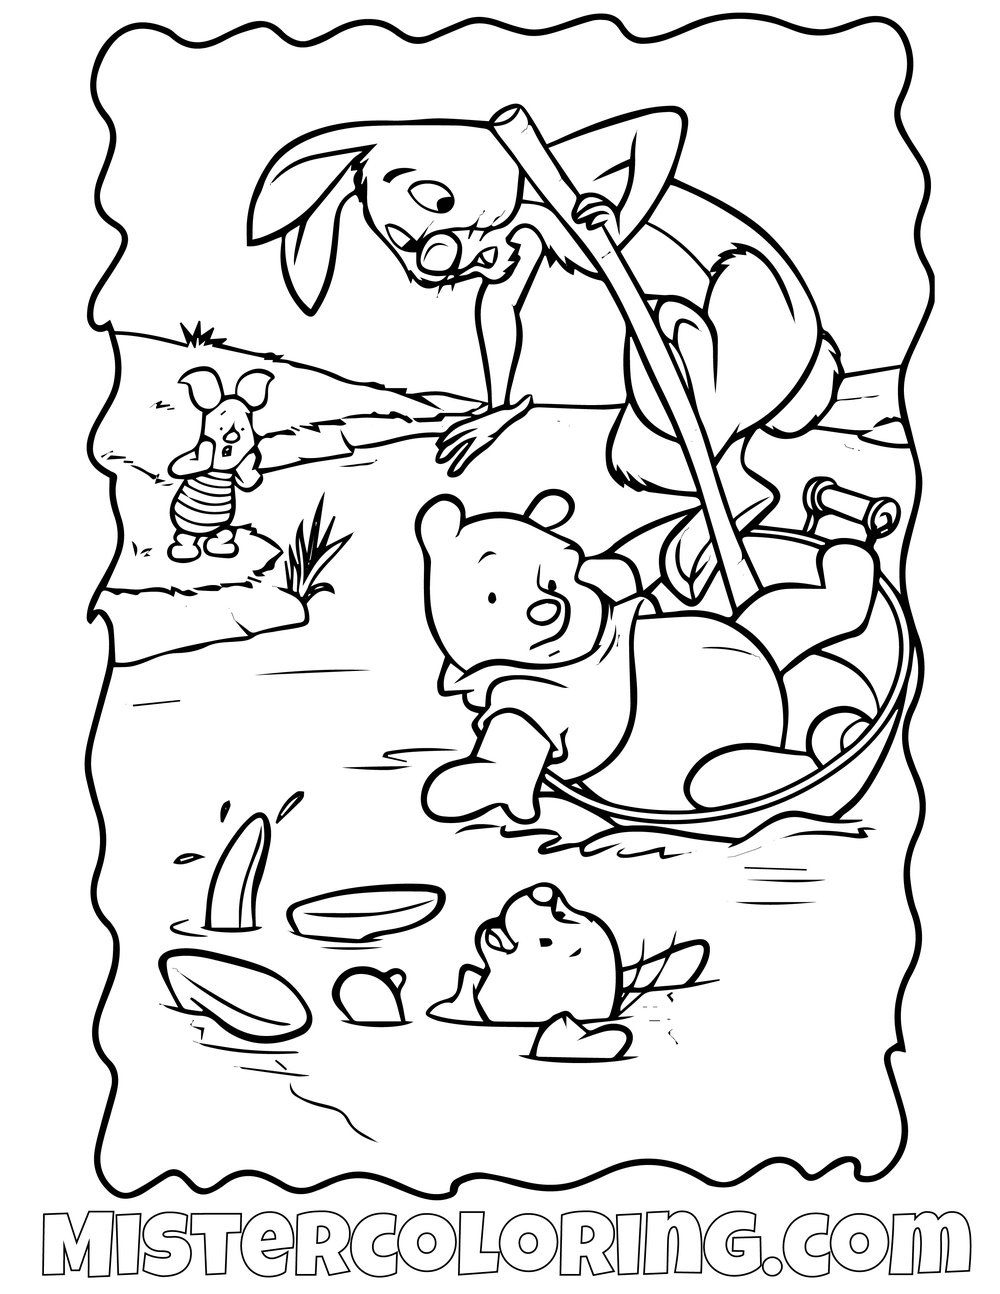 Winnie The Pooh 13 Coloring Page Winnie The Pooh Pictures Winnie The Pooh Coloring Pages